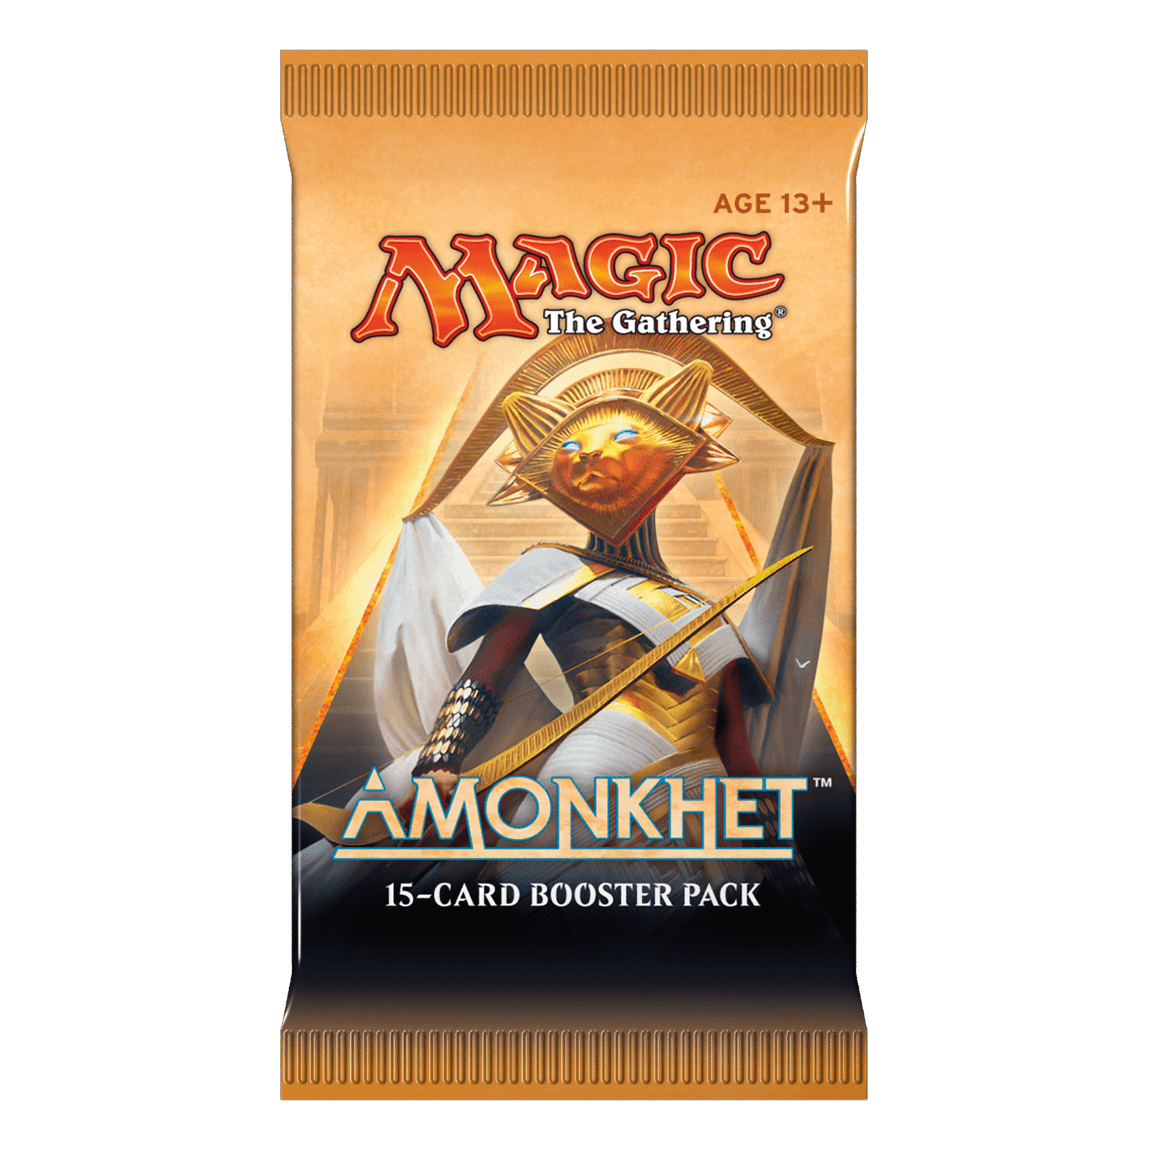 Magic the Gathering Amonkhet Booster Pack